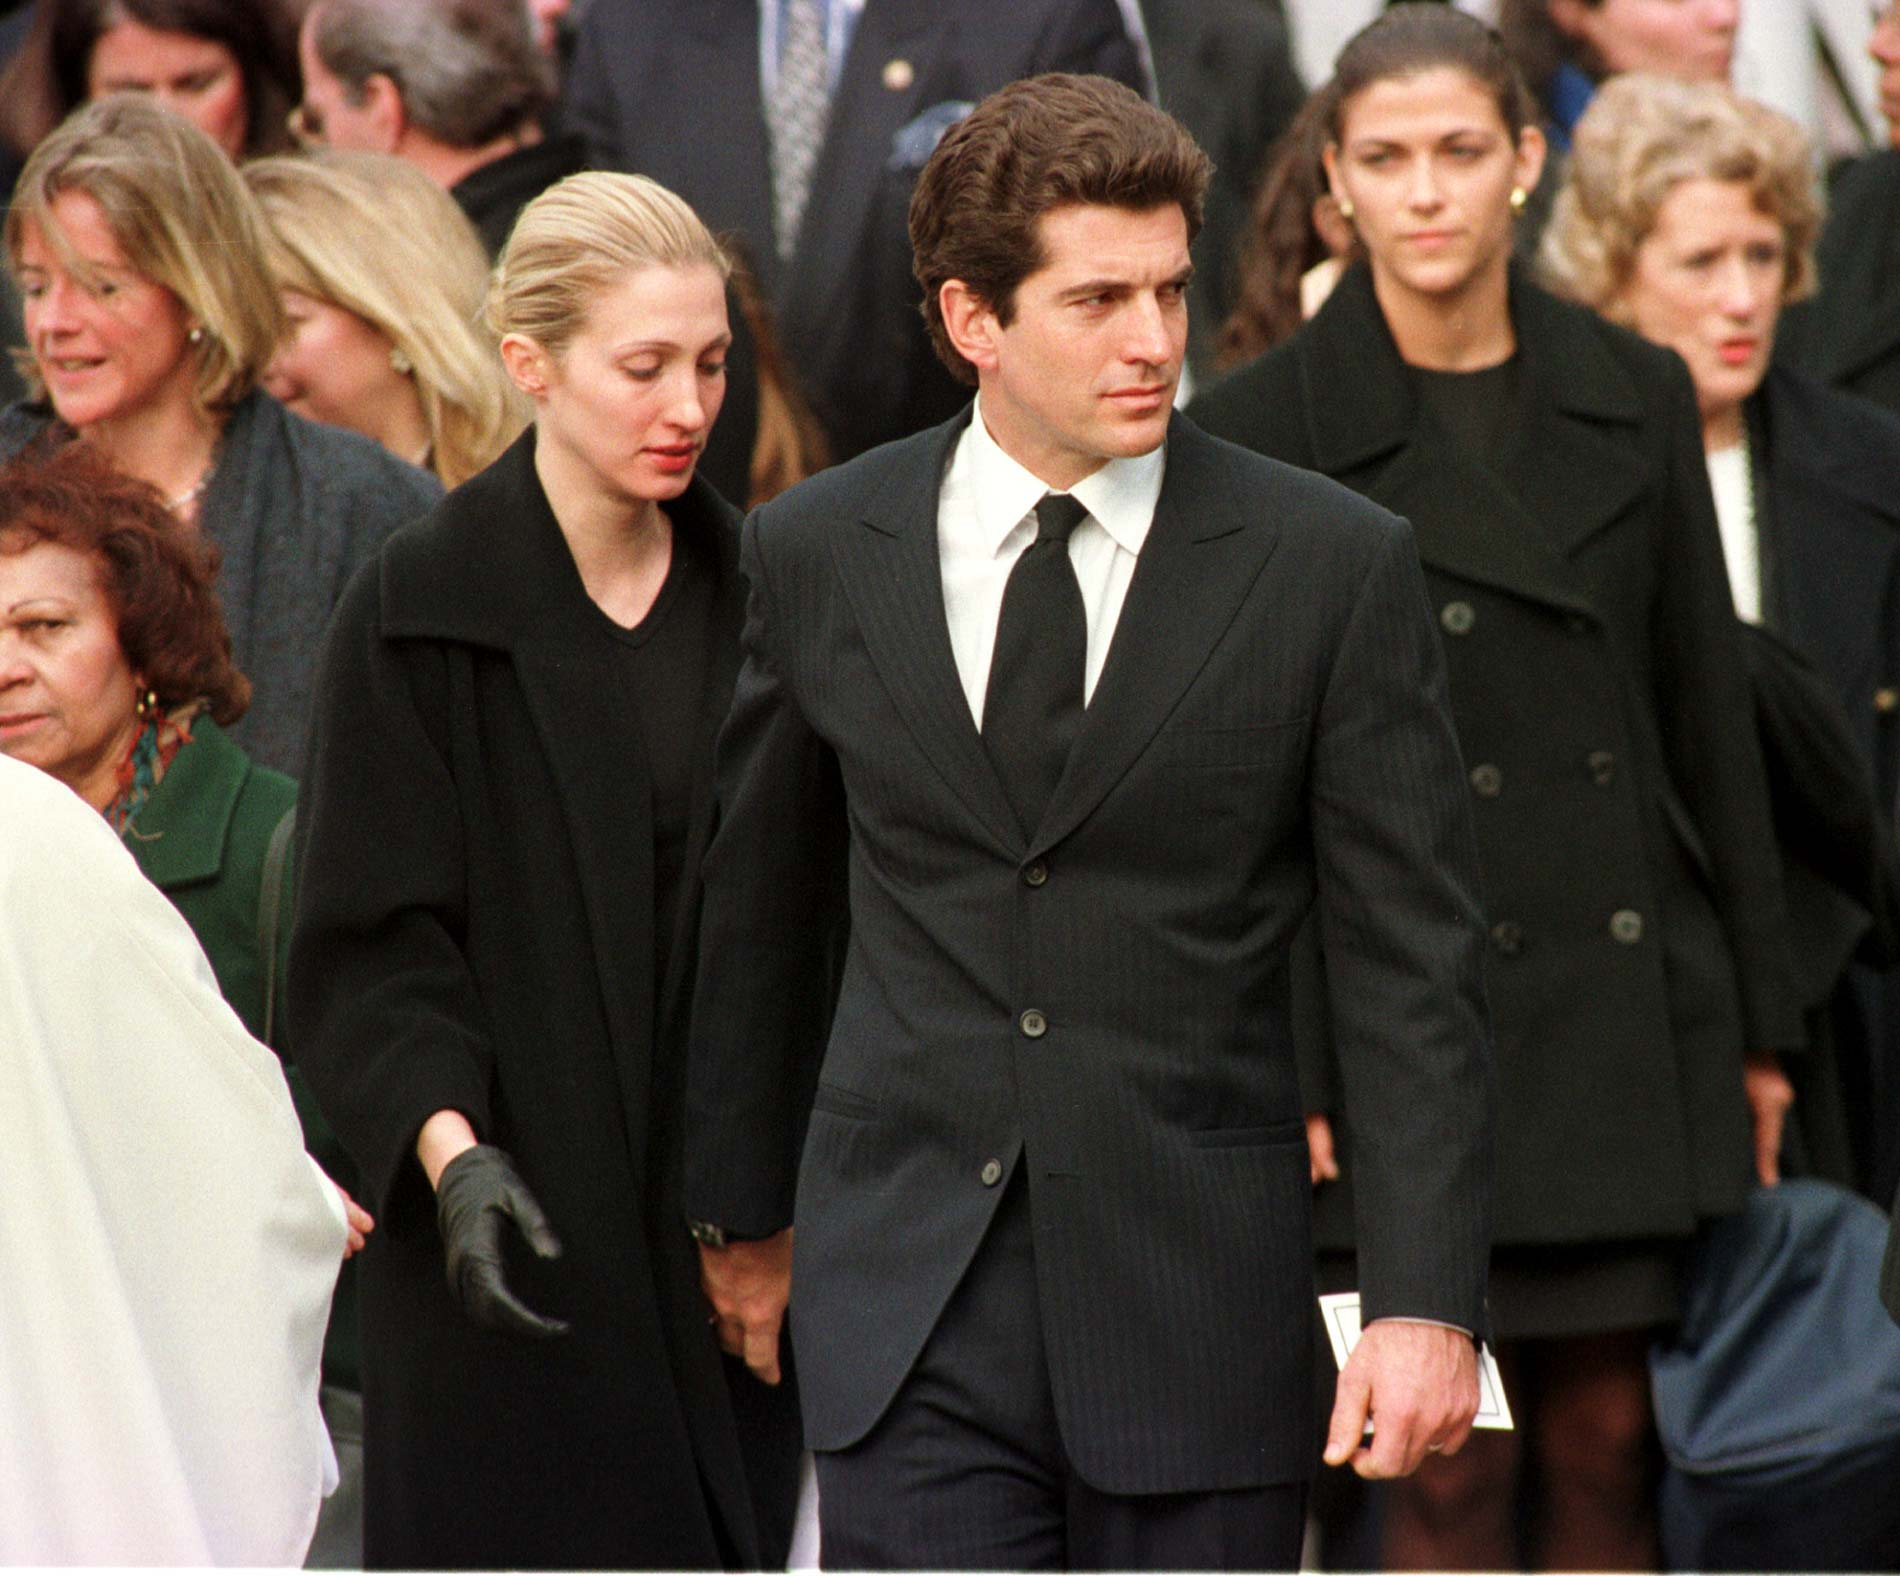 Carolyn Bessette Kennedy and John F. Kennedy Jr. | Photo: Getty Images